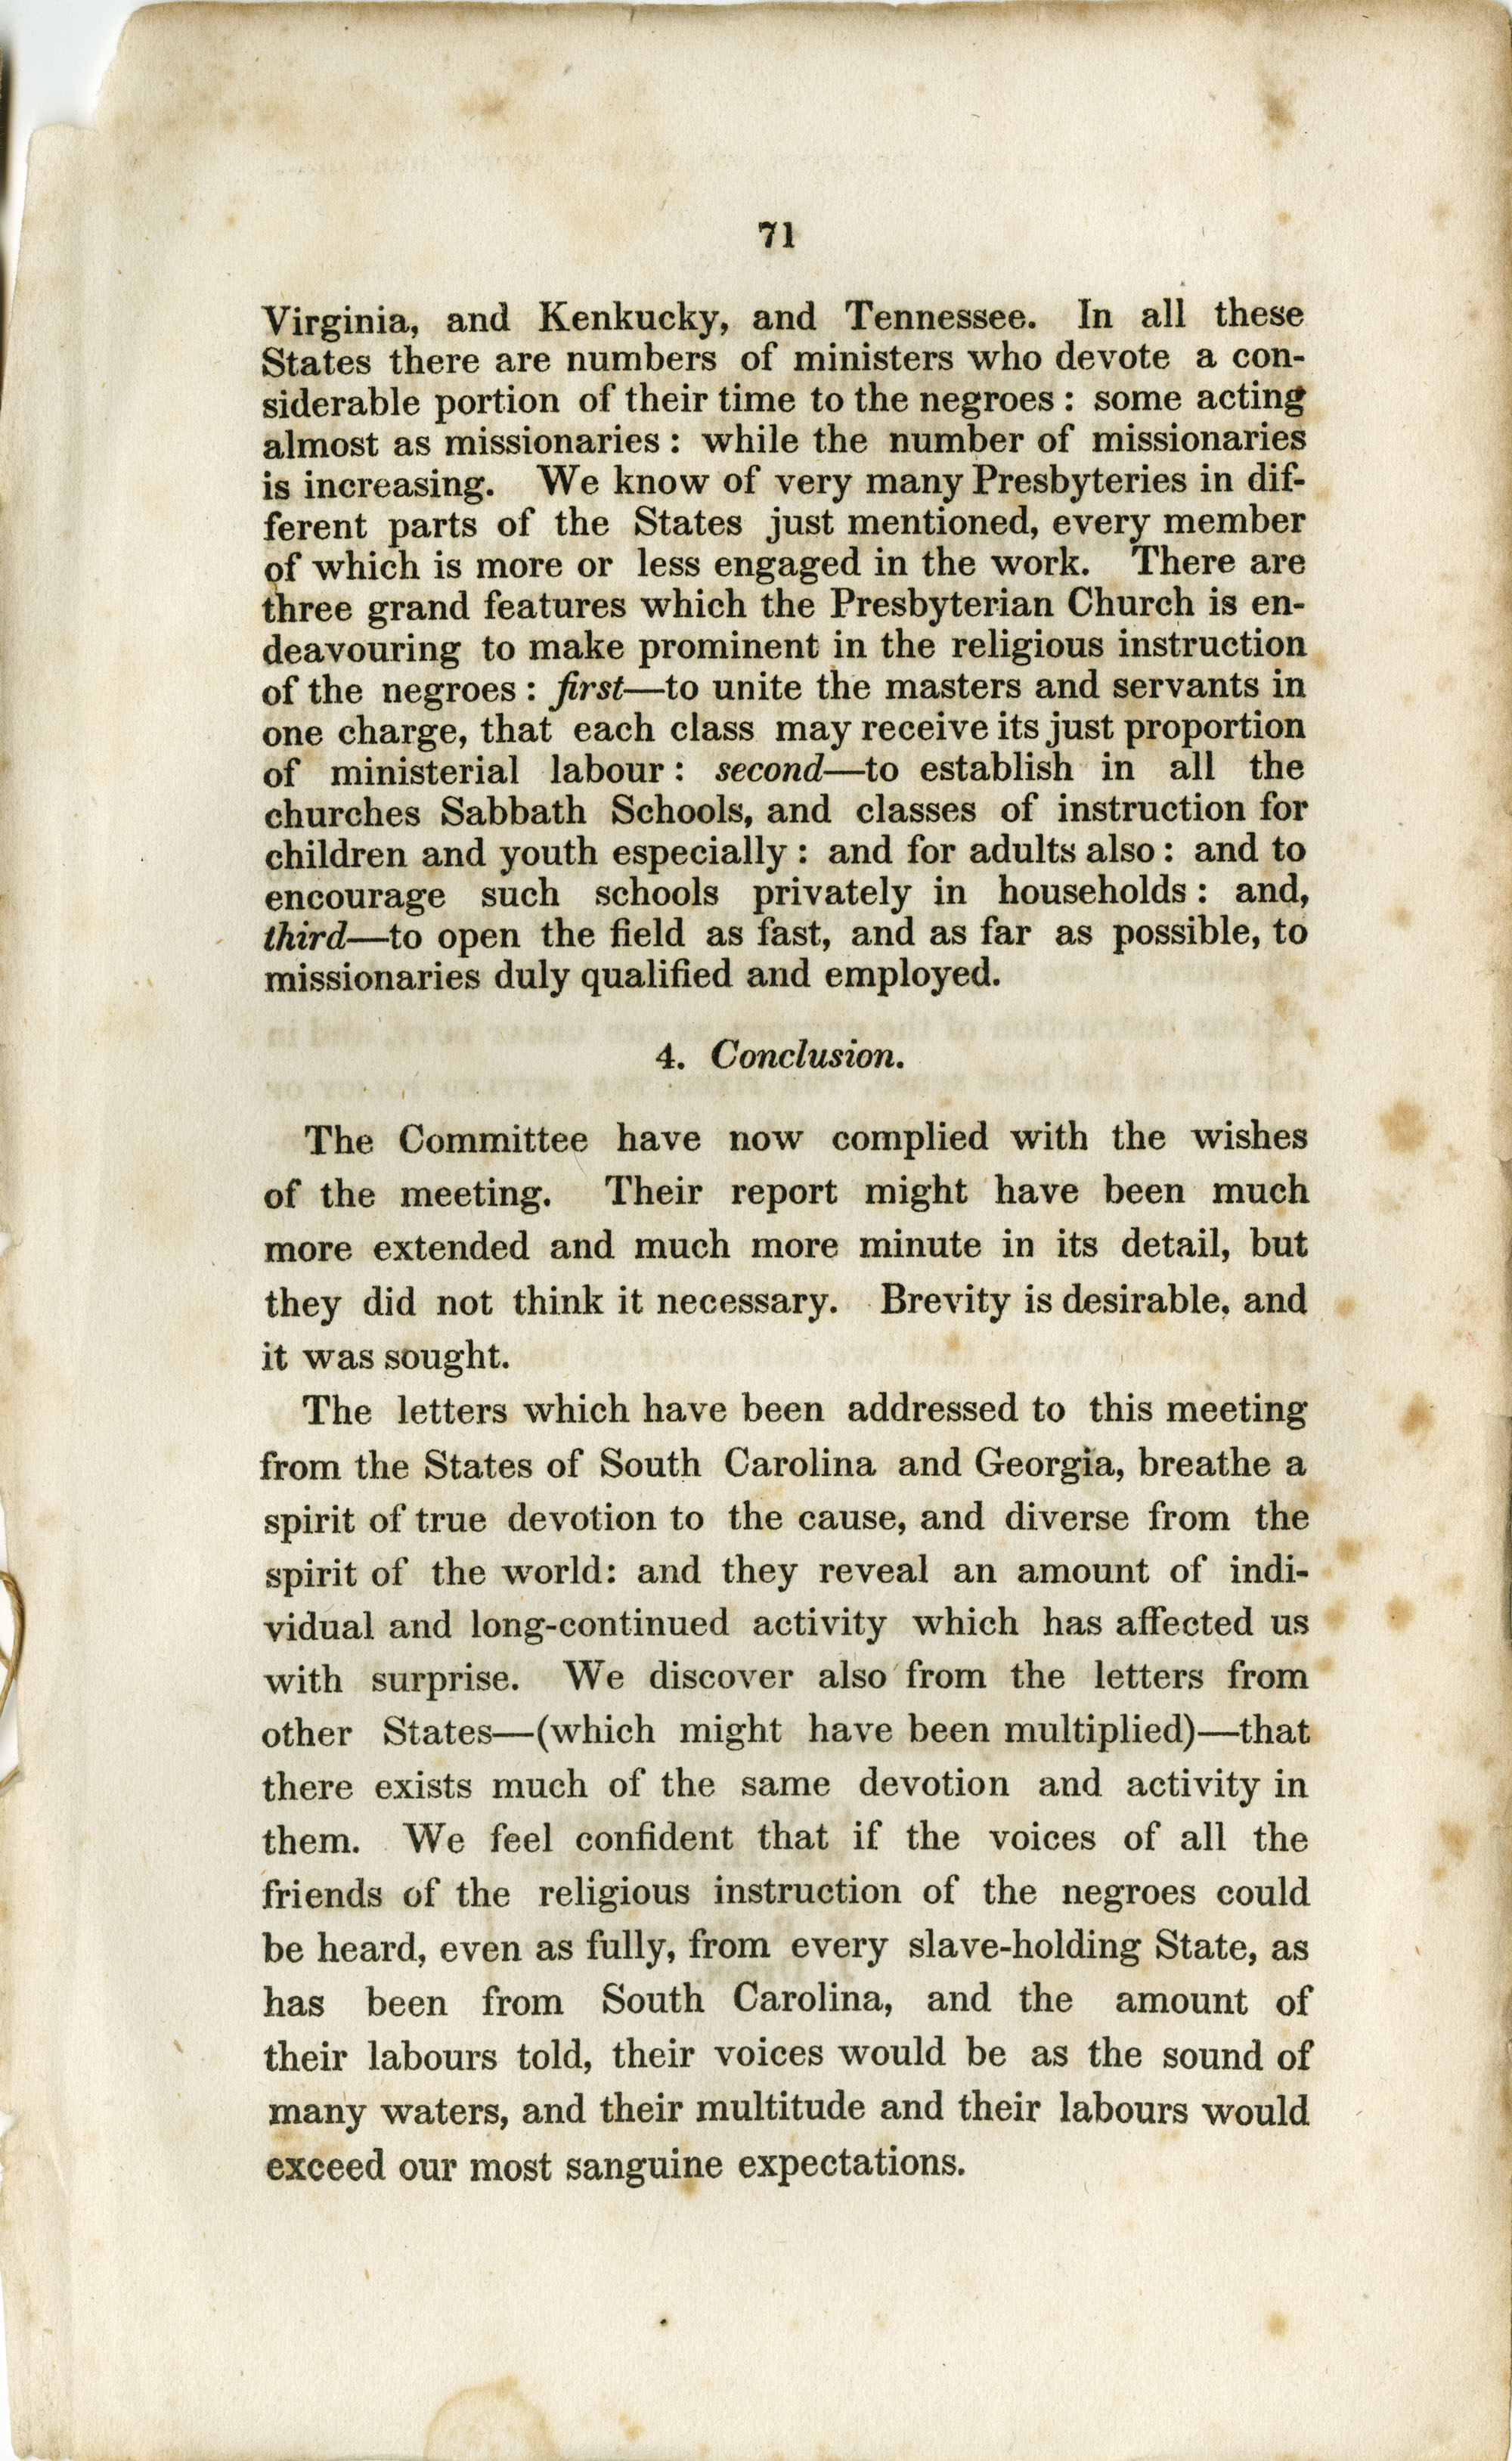 Report of the Committee, Page 71